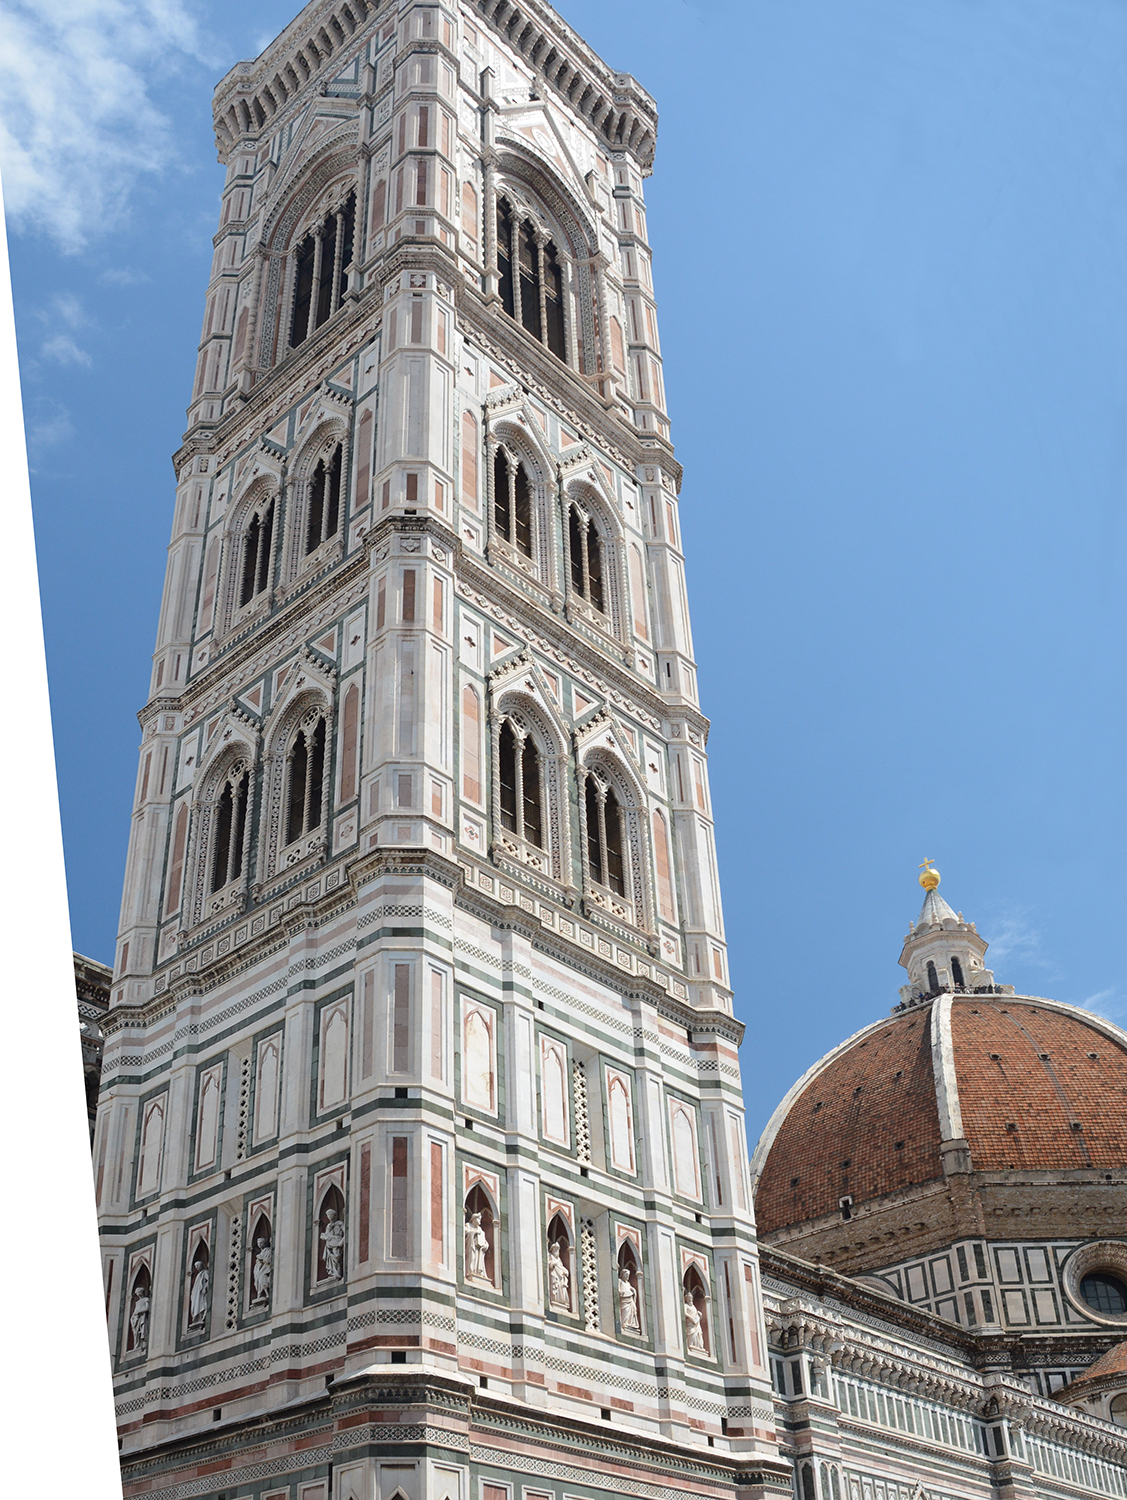 Still standing.  Giotto's Campanile  stands in the foreground.